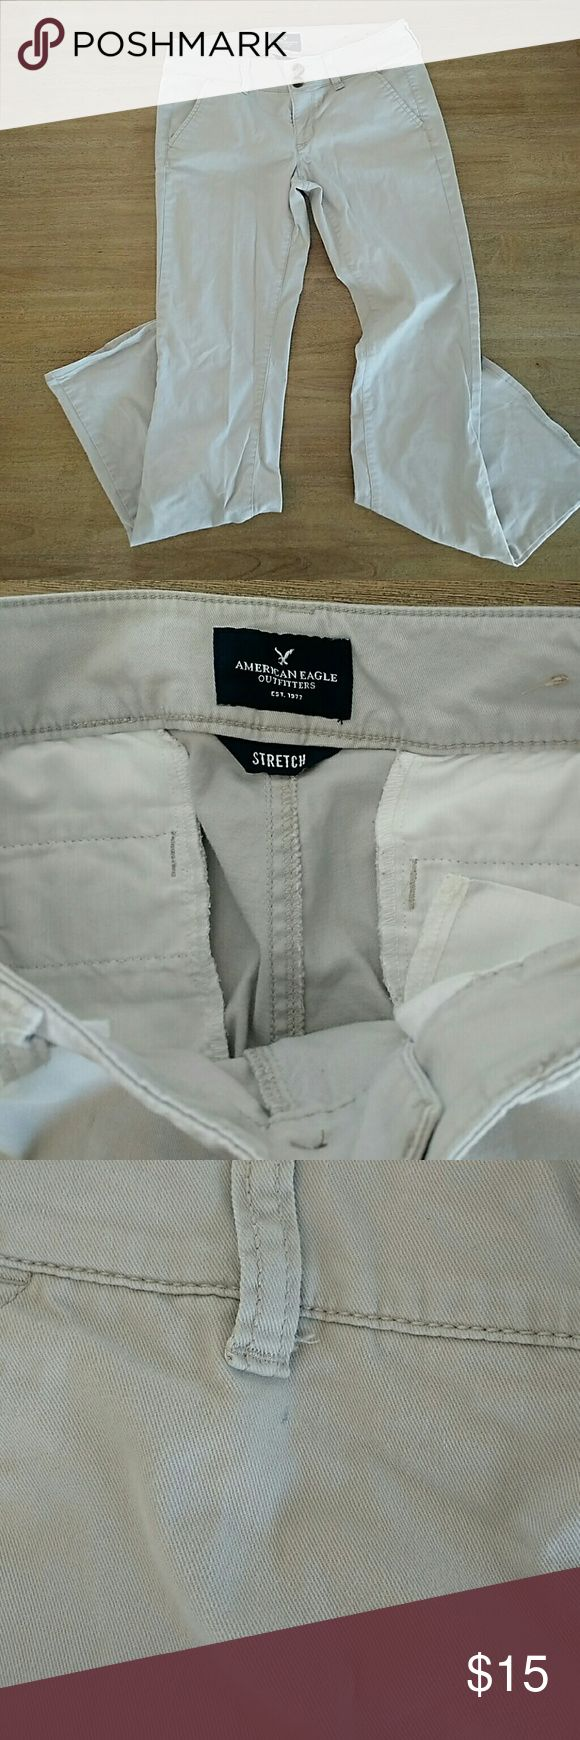 "American Eagle khakis Good shape! Boot cut, stretch. Great for work. Tiny pen mark by one belt loop. Size 0. 30.5"" inseam. American Eagle Outfitters Pants Trousers"